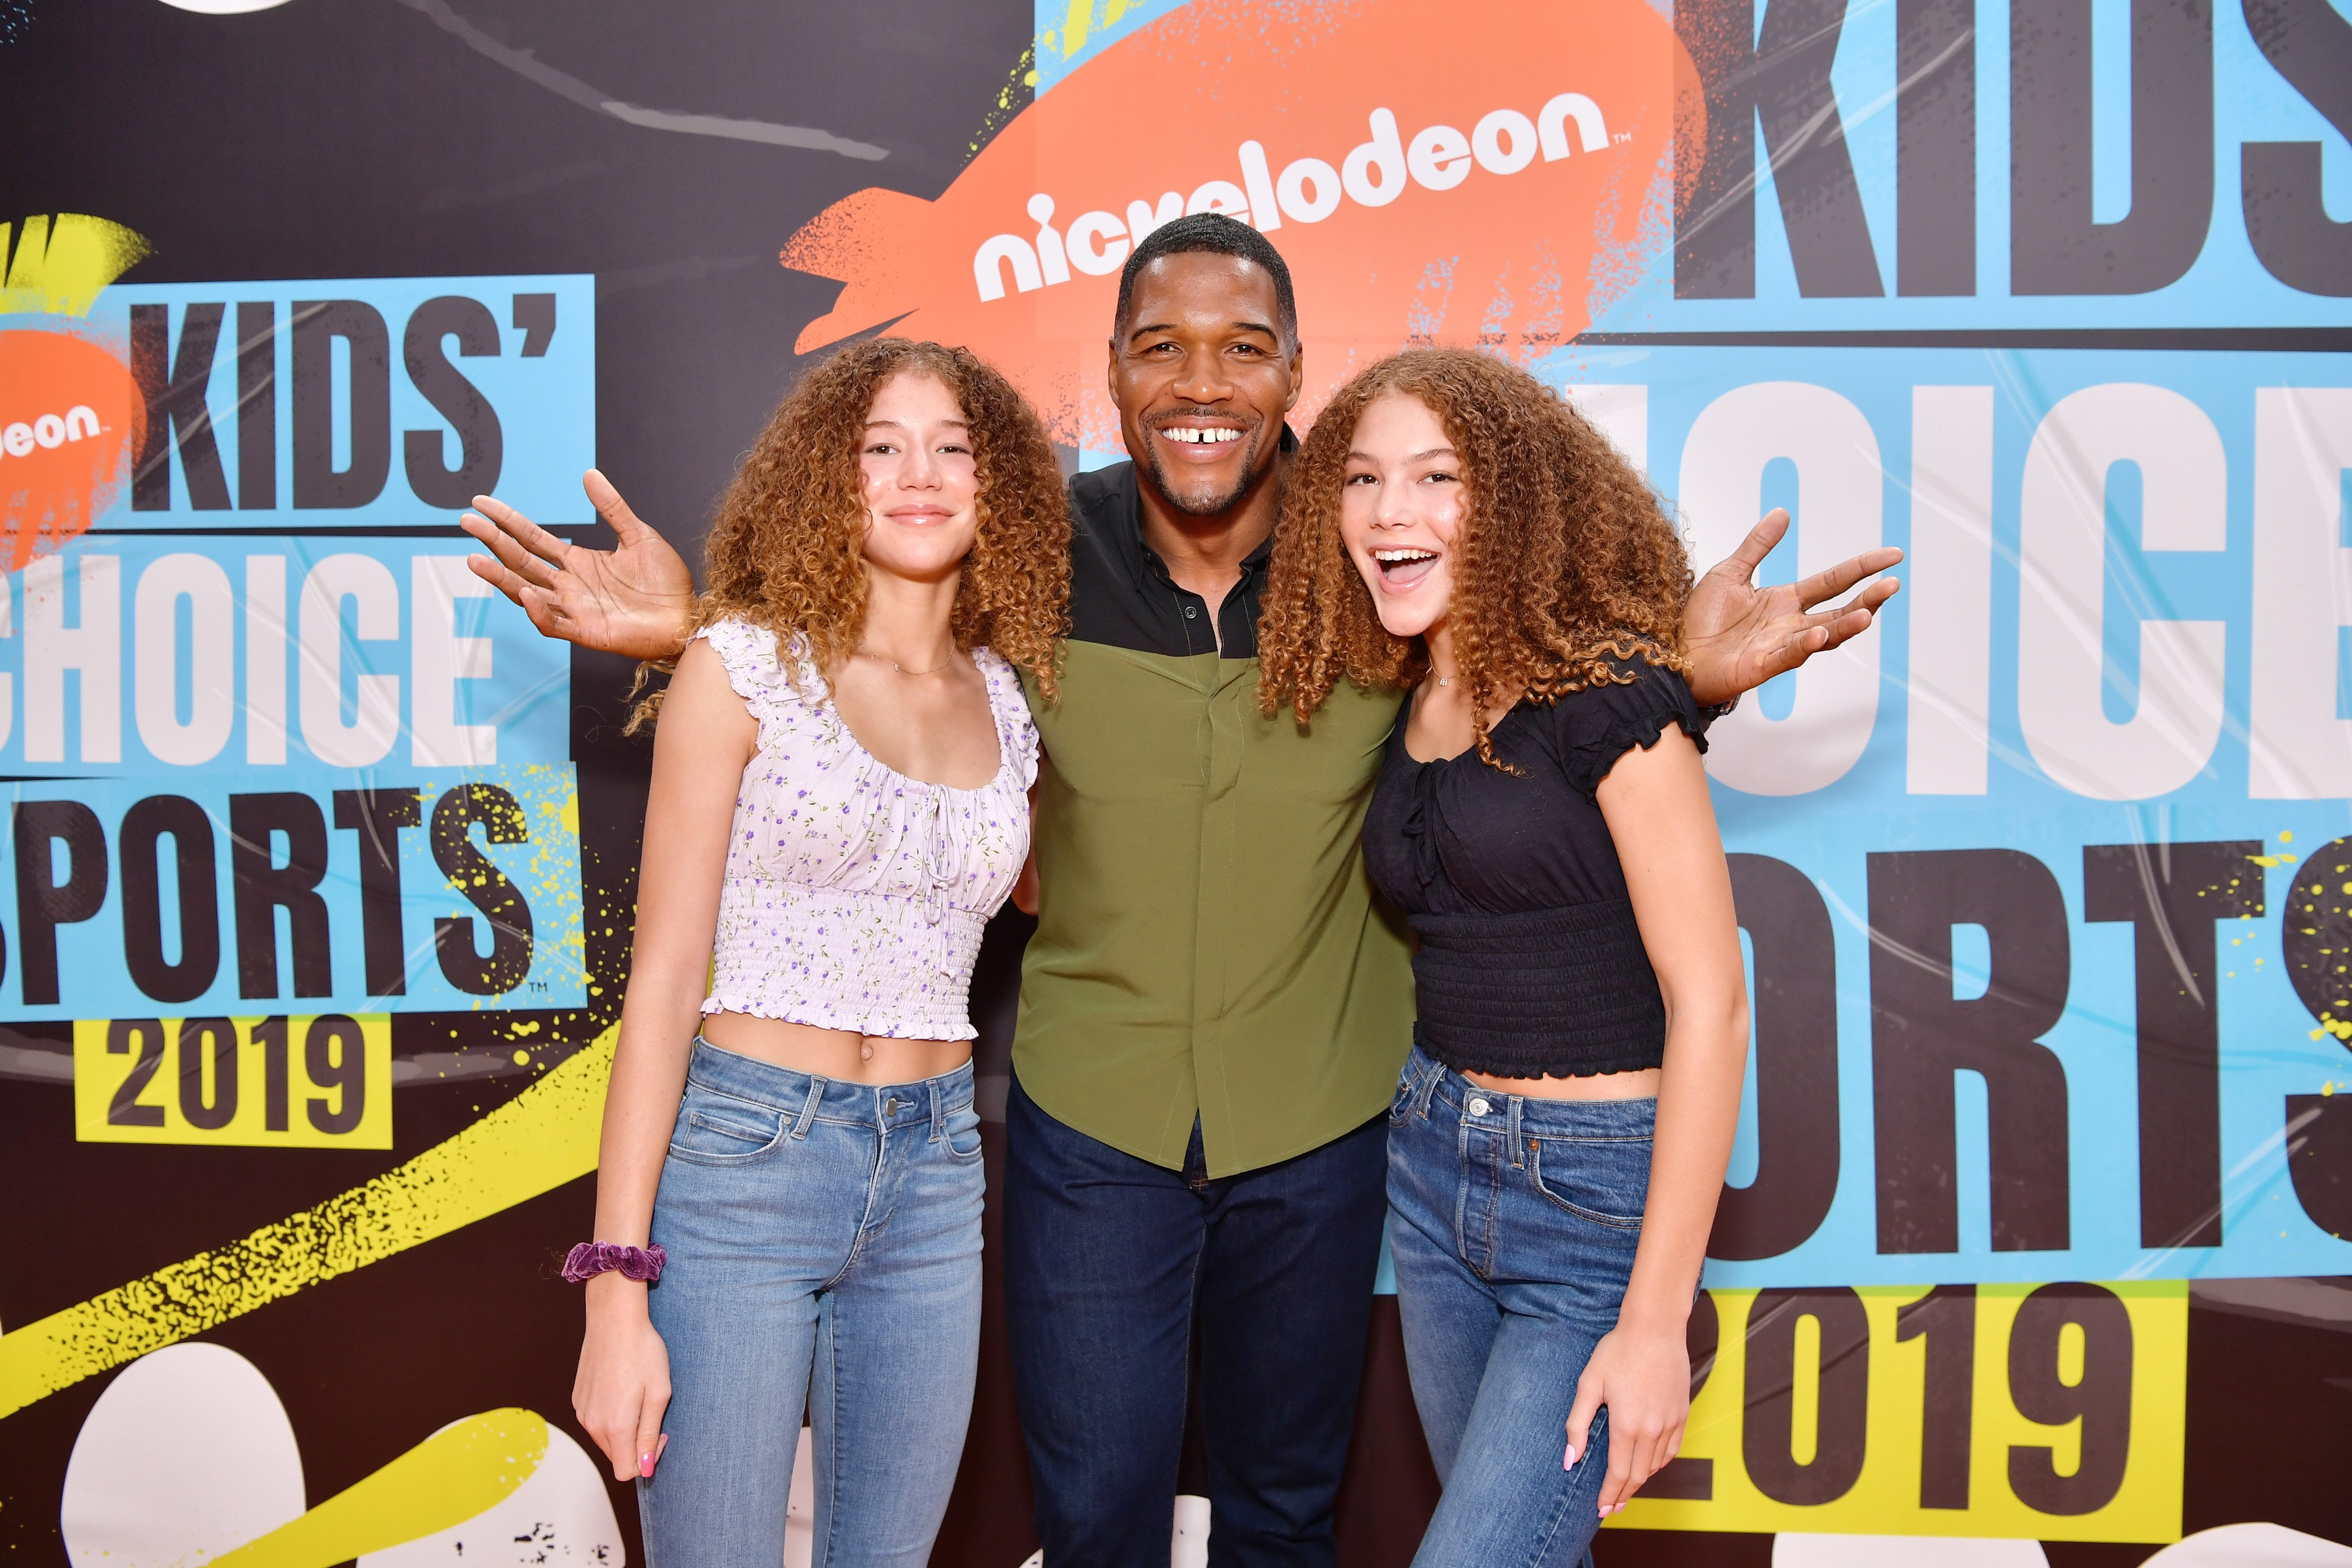 Michael Strahan and his twin daughters at Nickelodeon Kids' Choice Sports on July 11, 2019 in California. | Photo: Getty Images